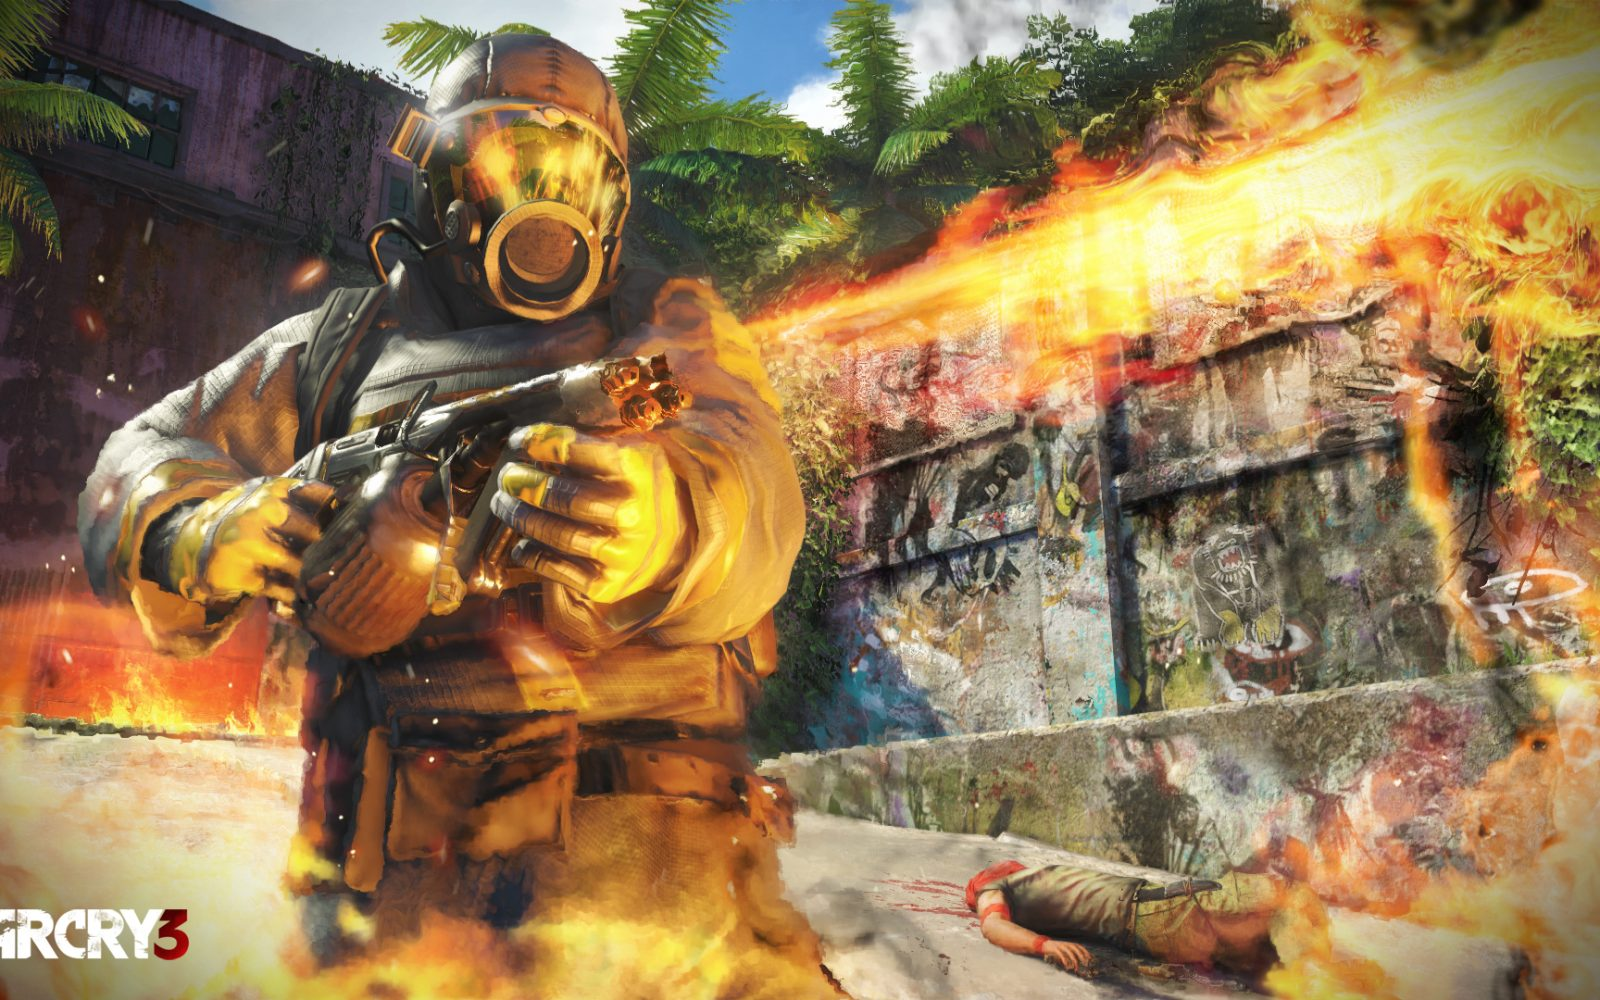 Gamers Deals Far Cry 3 PS3Xbox360PC 20 XCOM Enemy Unknown MacPC 20 IOS Apps